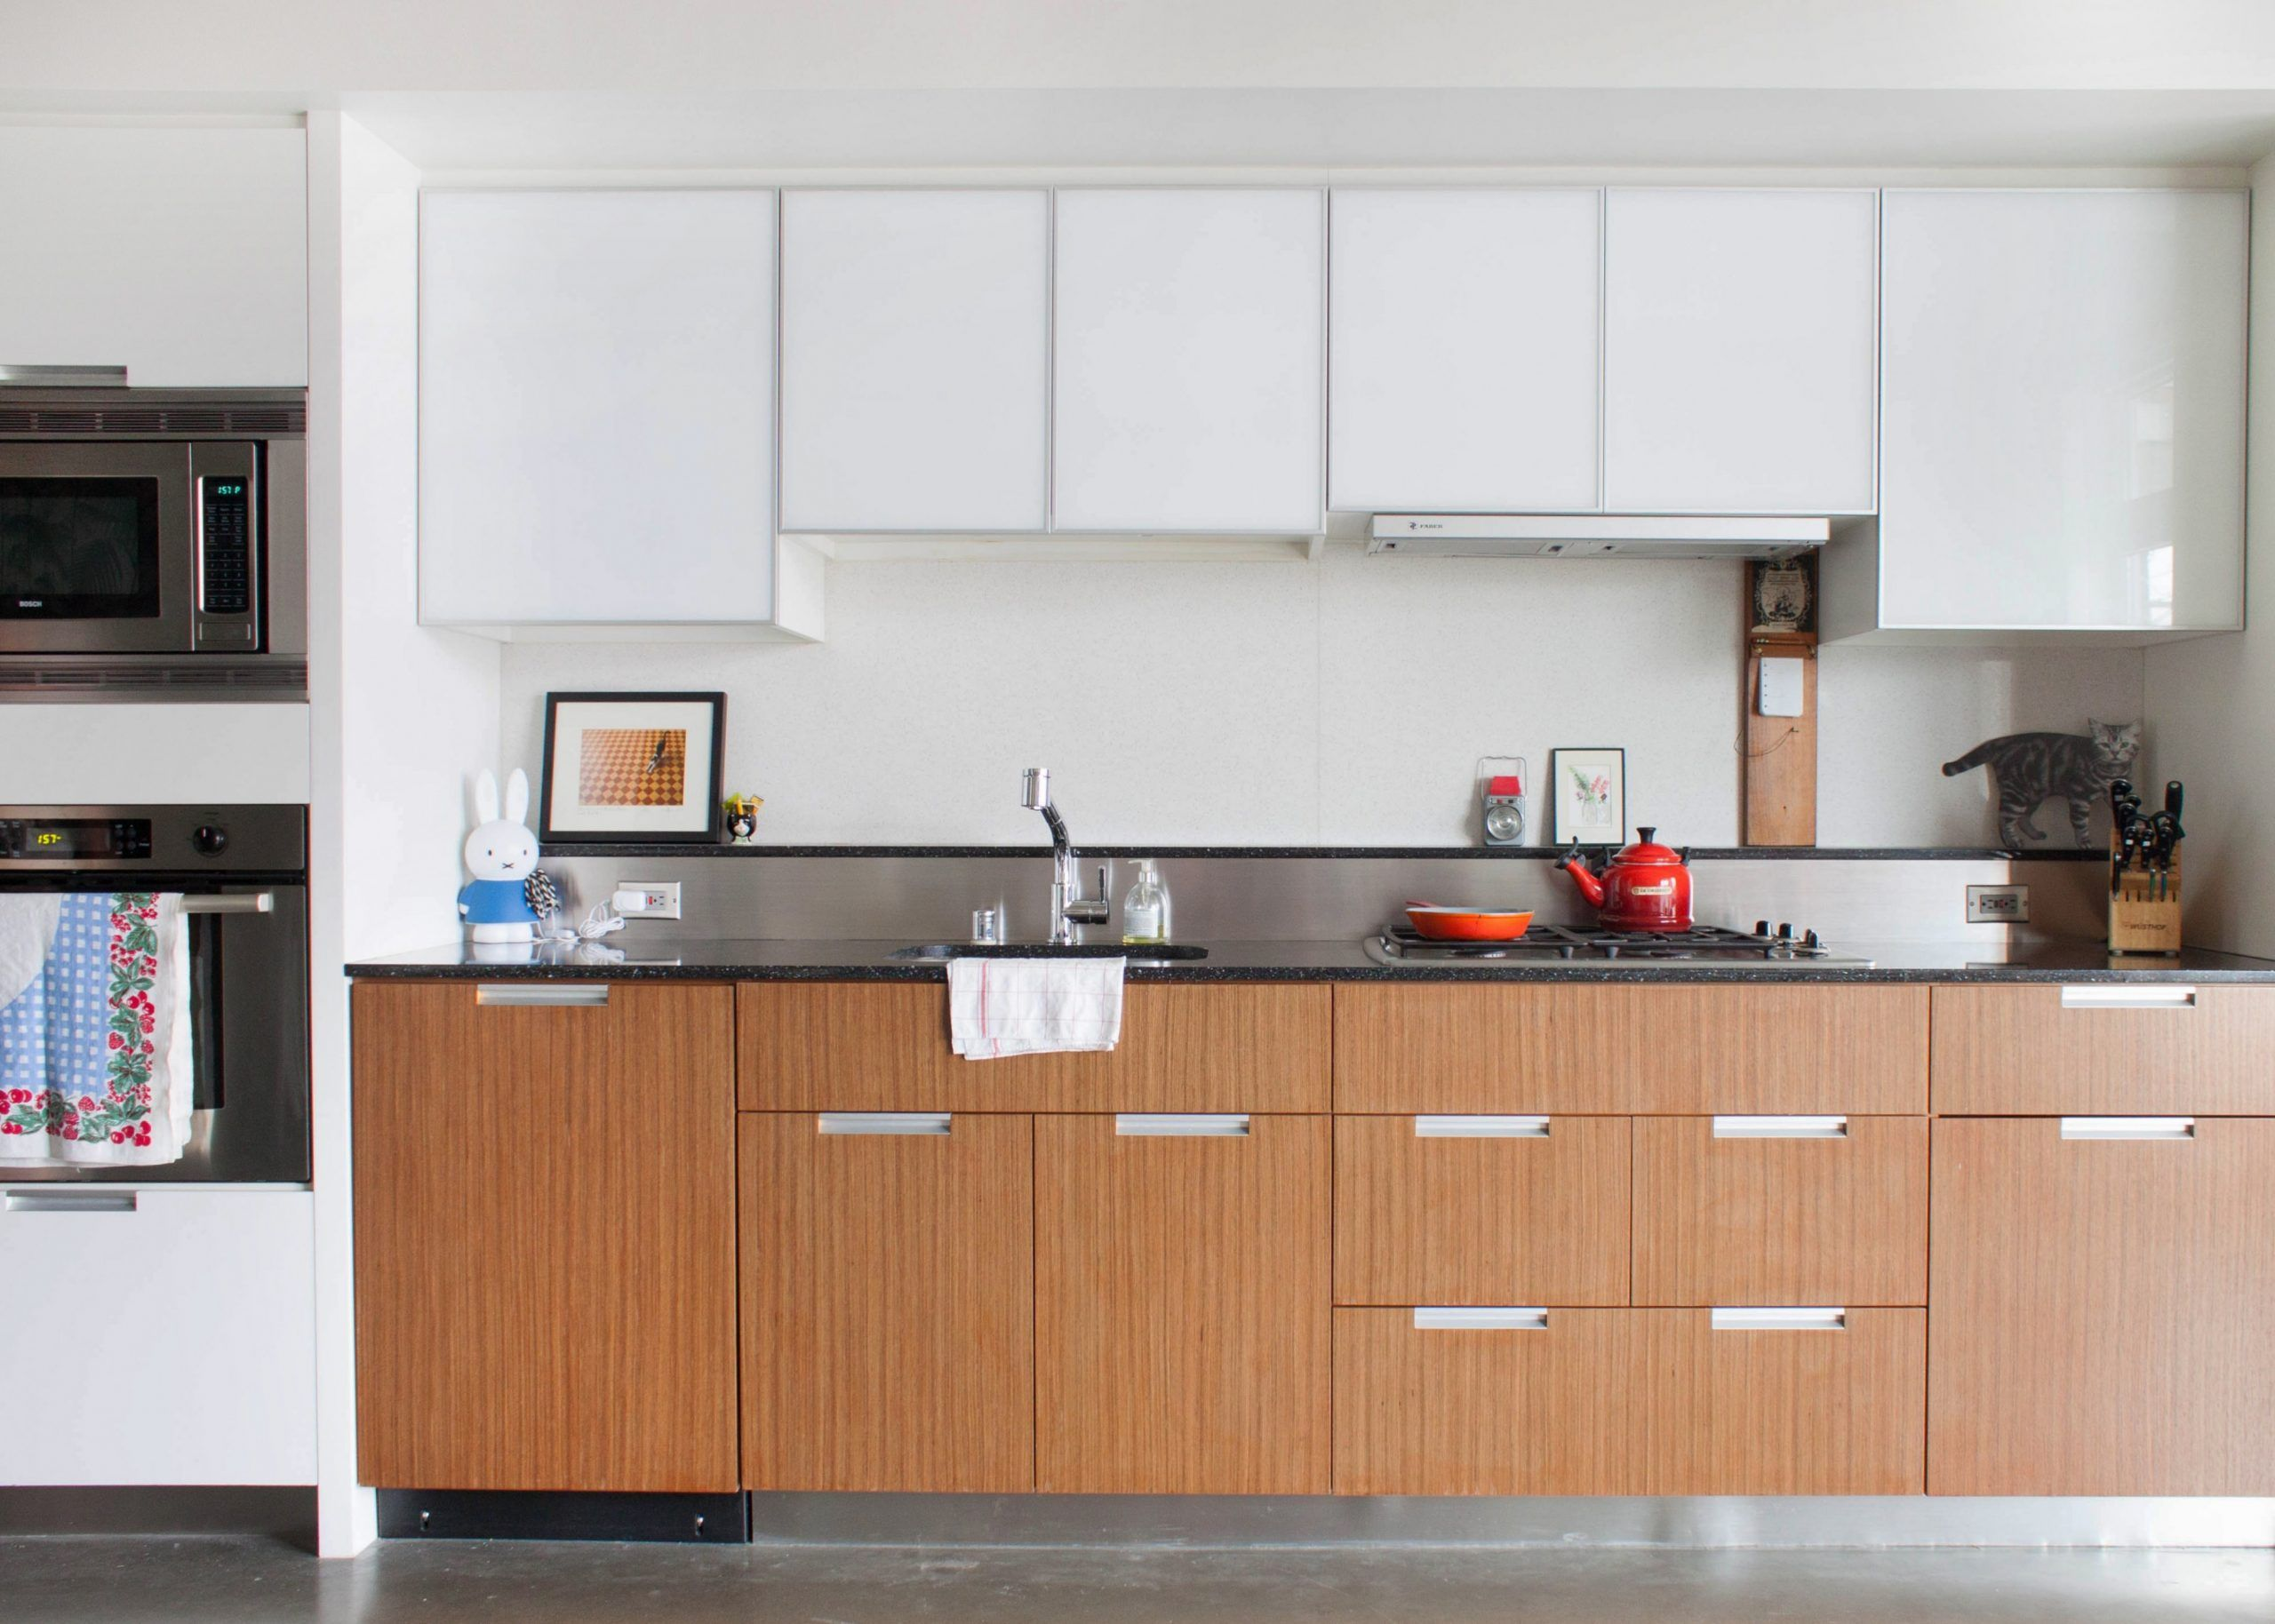 kitchen apps for remodel in 2020 with images kitchen cabinets decor kitchen design kitchen on kitchen remodel apps id=21589